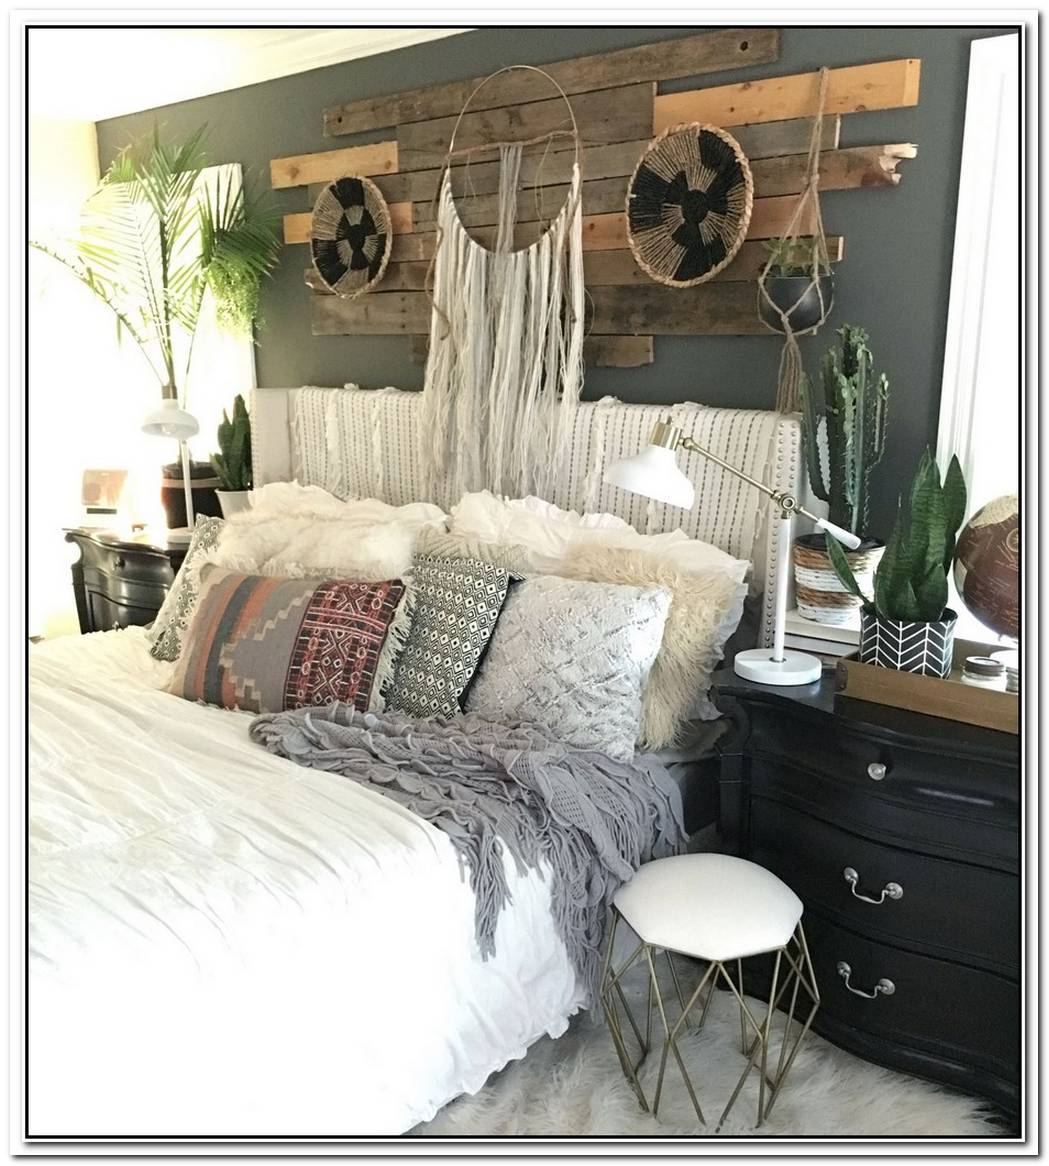 Follow This Bedroom'S Example For A Sophisticated Take On Boho Chic